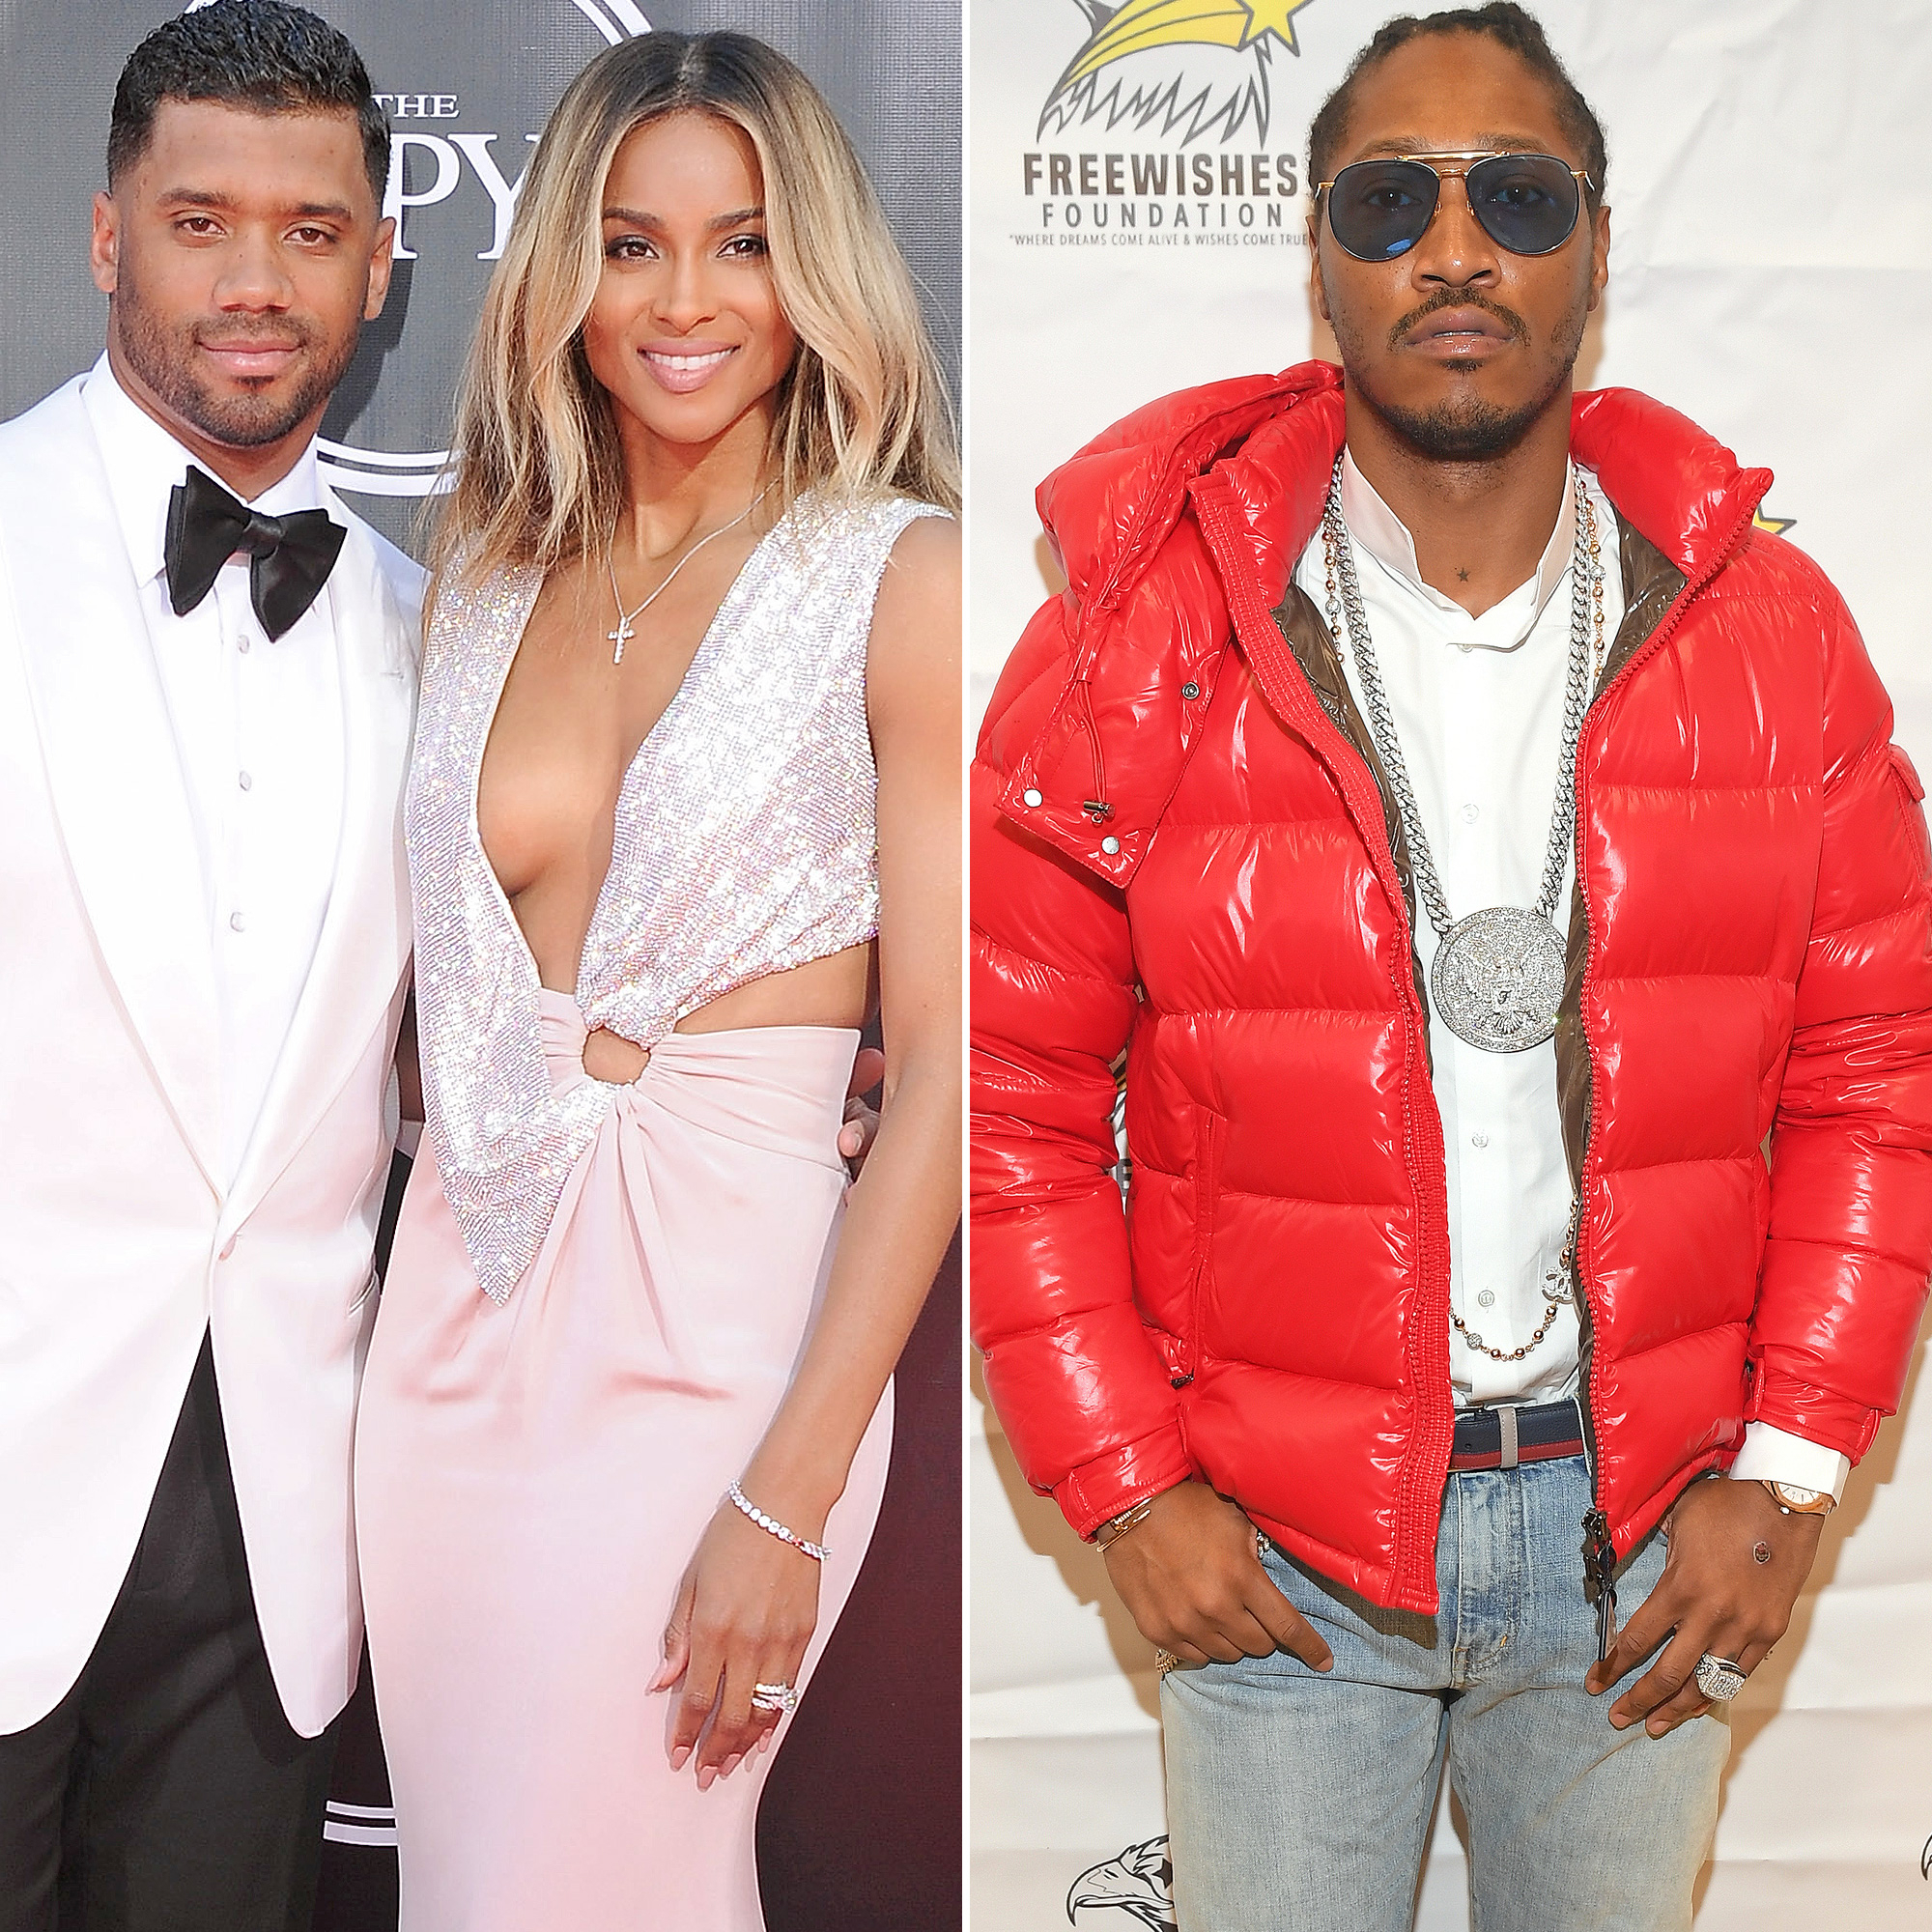 Russell Wilson, Ciara and Future